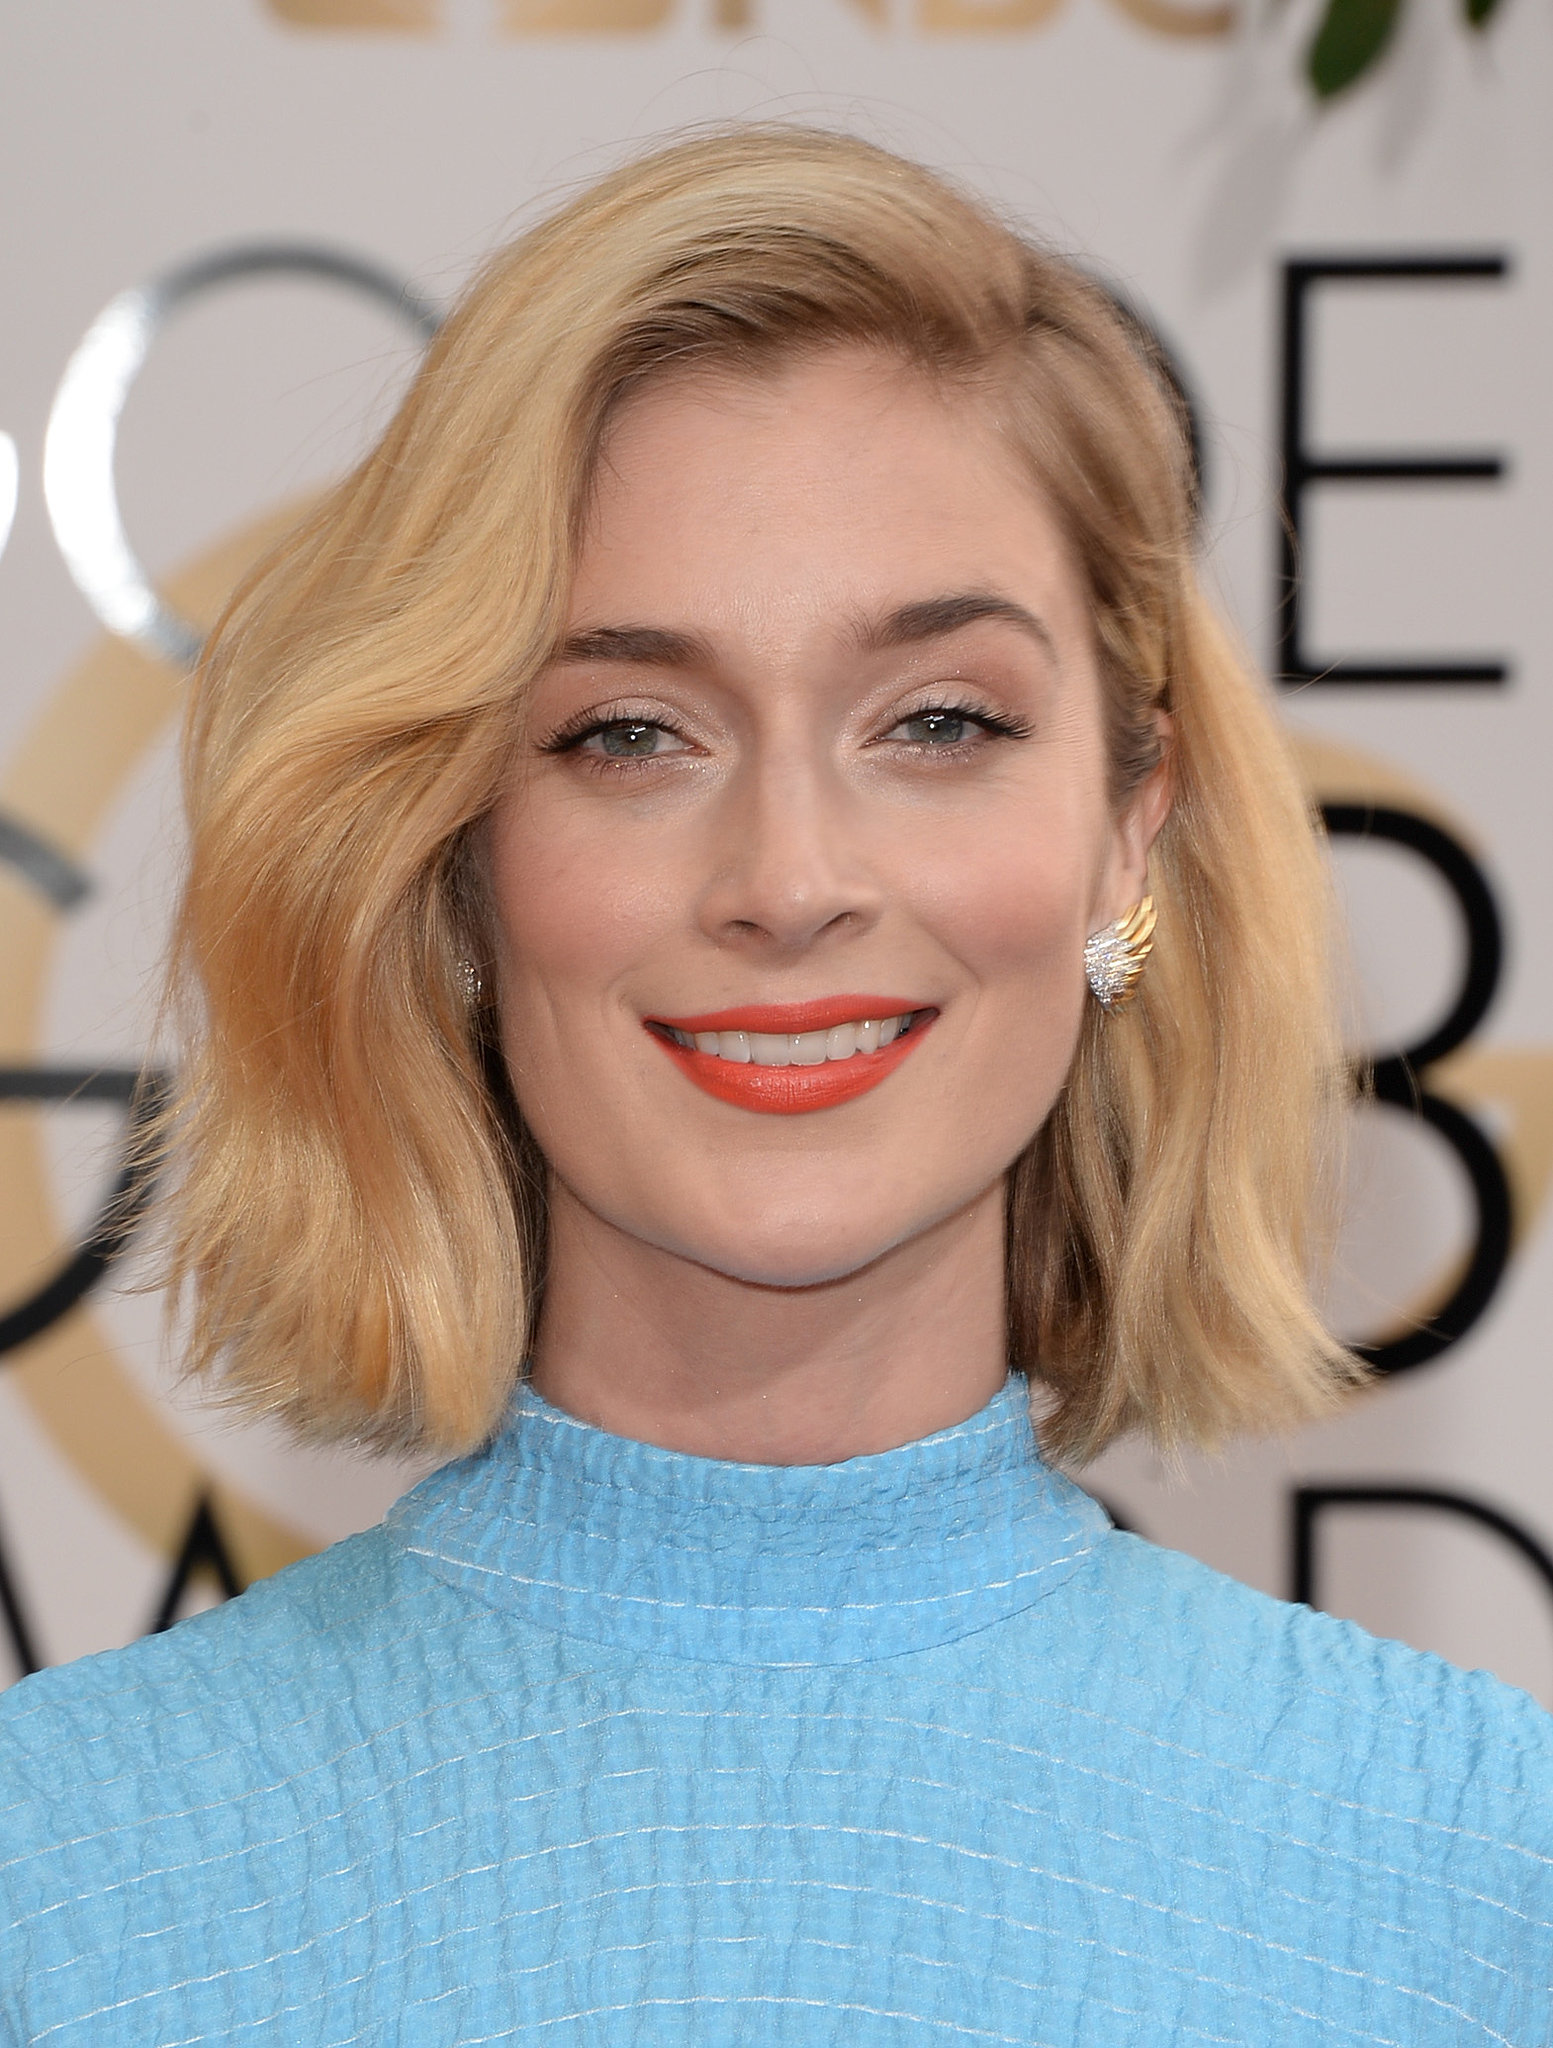 caitlin fitzgerald boyfriendcaitlin fitzgerald husband, caitlin fitzgerald listal, caitlin fitzgerald foto, caitlin fitzgerald height and weight, caitlin fitzgerald imdb, caitlin fitzgerald twitter, caitlin fitzgerald, caitlin fitzgerald instagram, caitlin fitzgerald birthday, caitlin fitzgerald interview, caitlin fitzgerald boyfriend, caitlin fitzgerald bio, caitlin fitzgerald dating, caitlin fitzgerald nudography, caitlin fitzgerald pictures